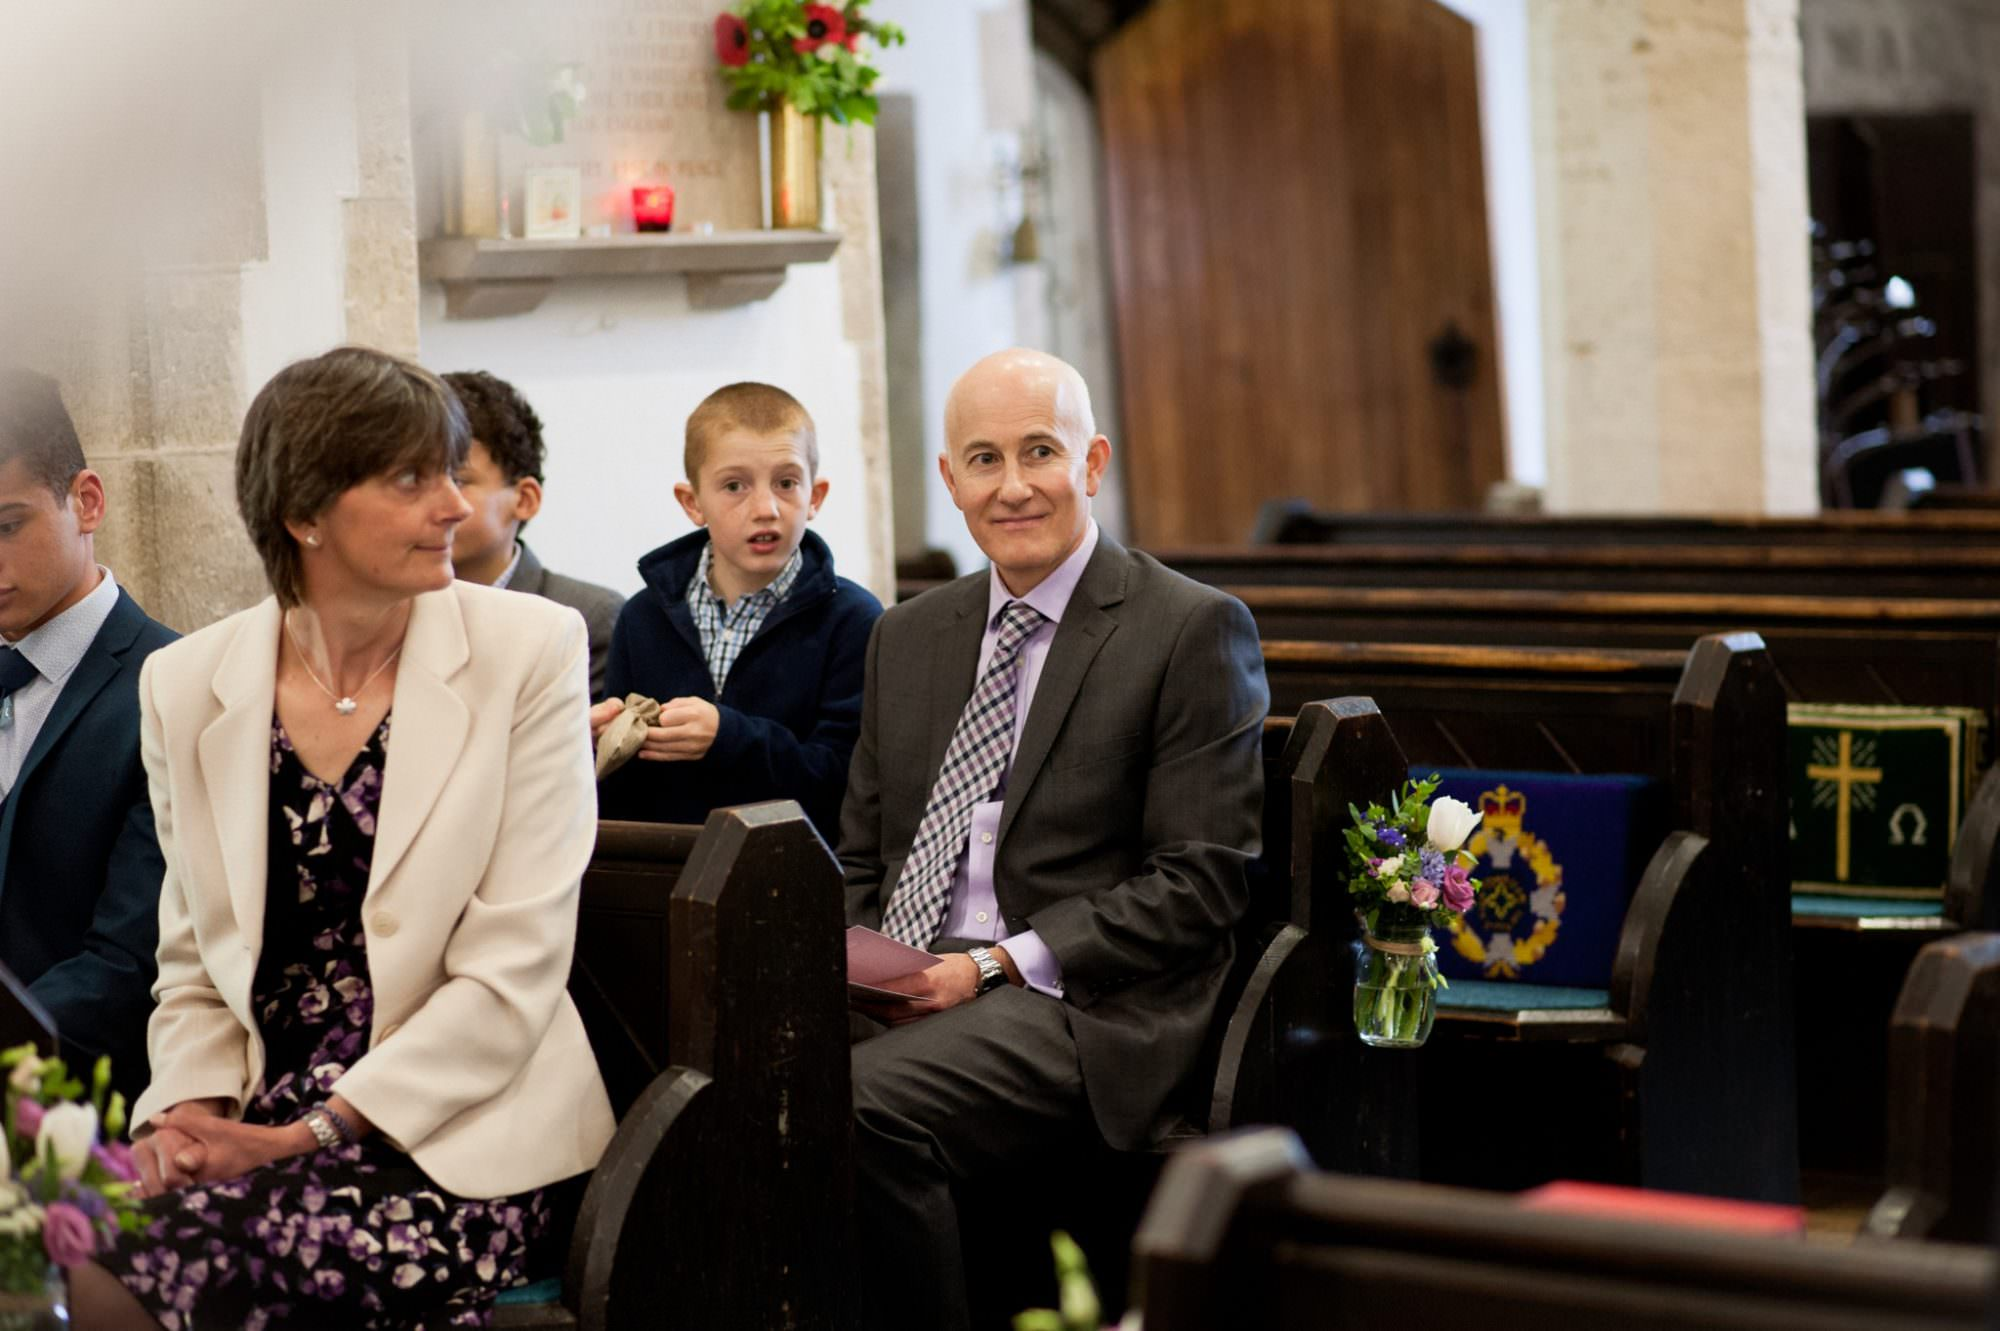 Photograph of Sopley Church Wedding